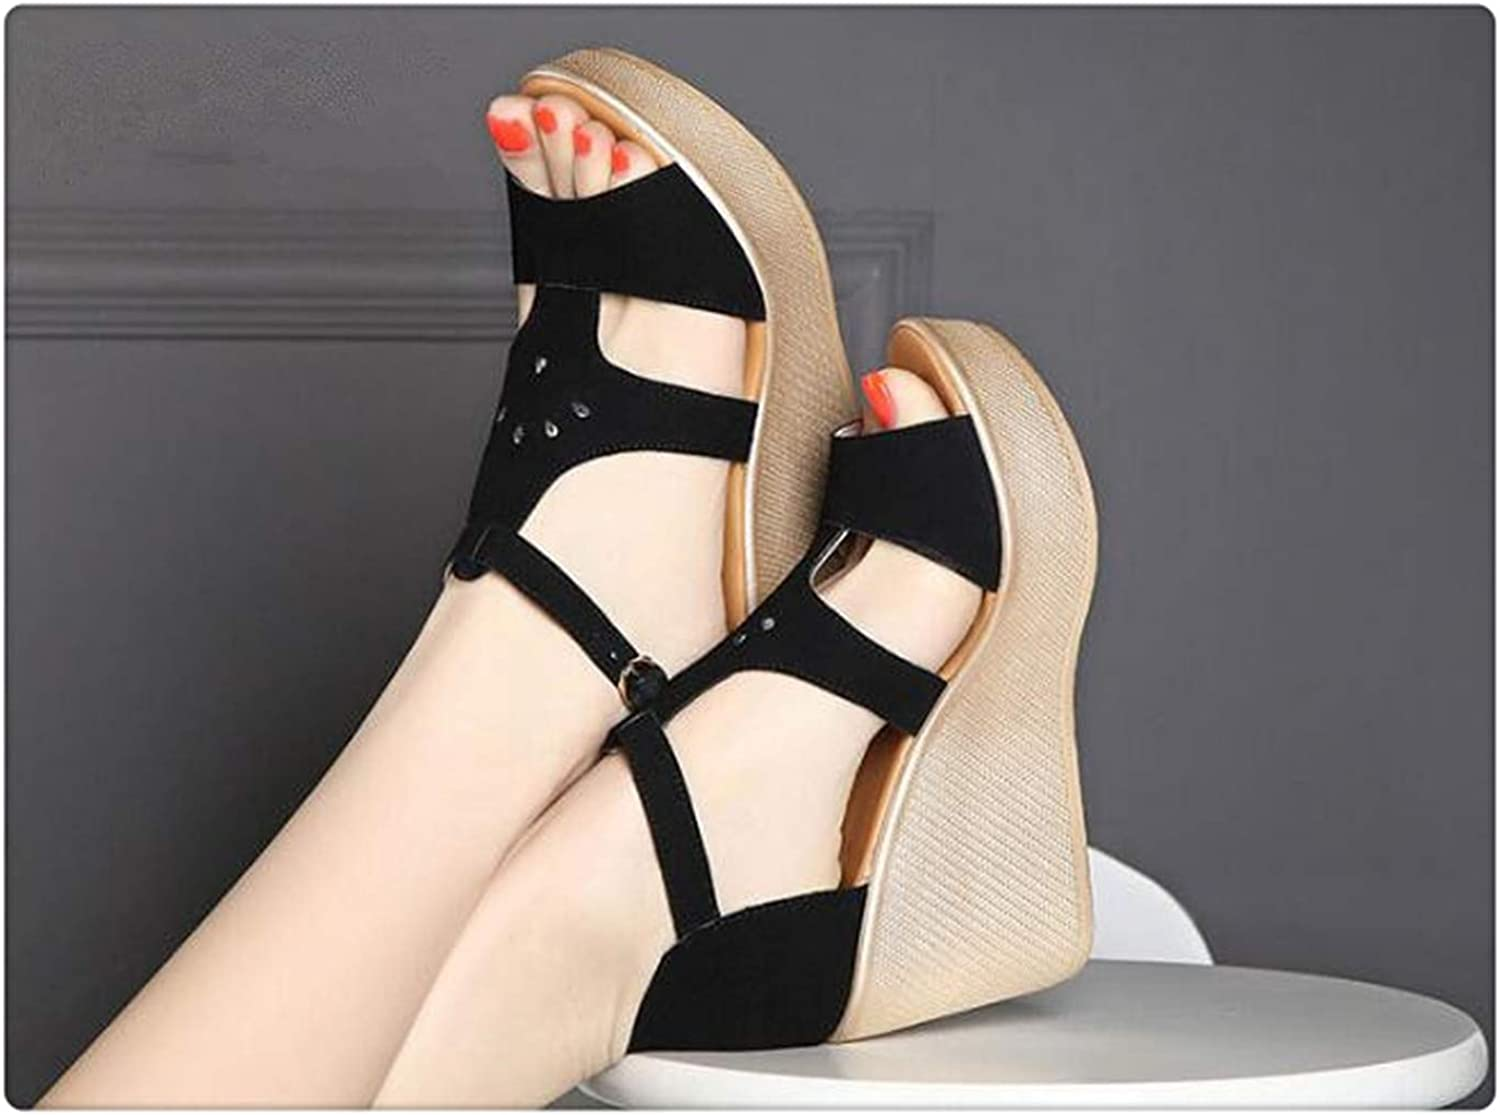 AAKOPE& Large Size Women shoes SummerHigh Heels Basic Sandal Open Toes Platform women